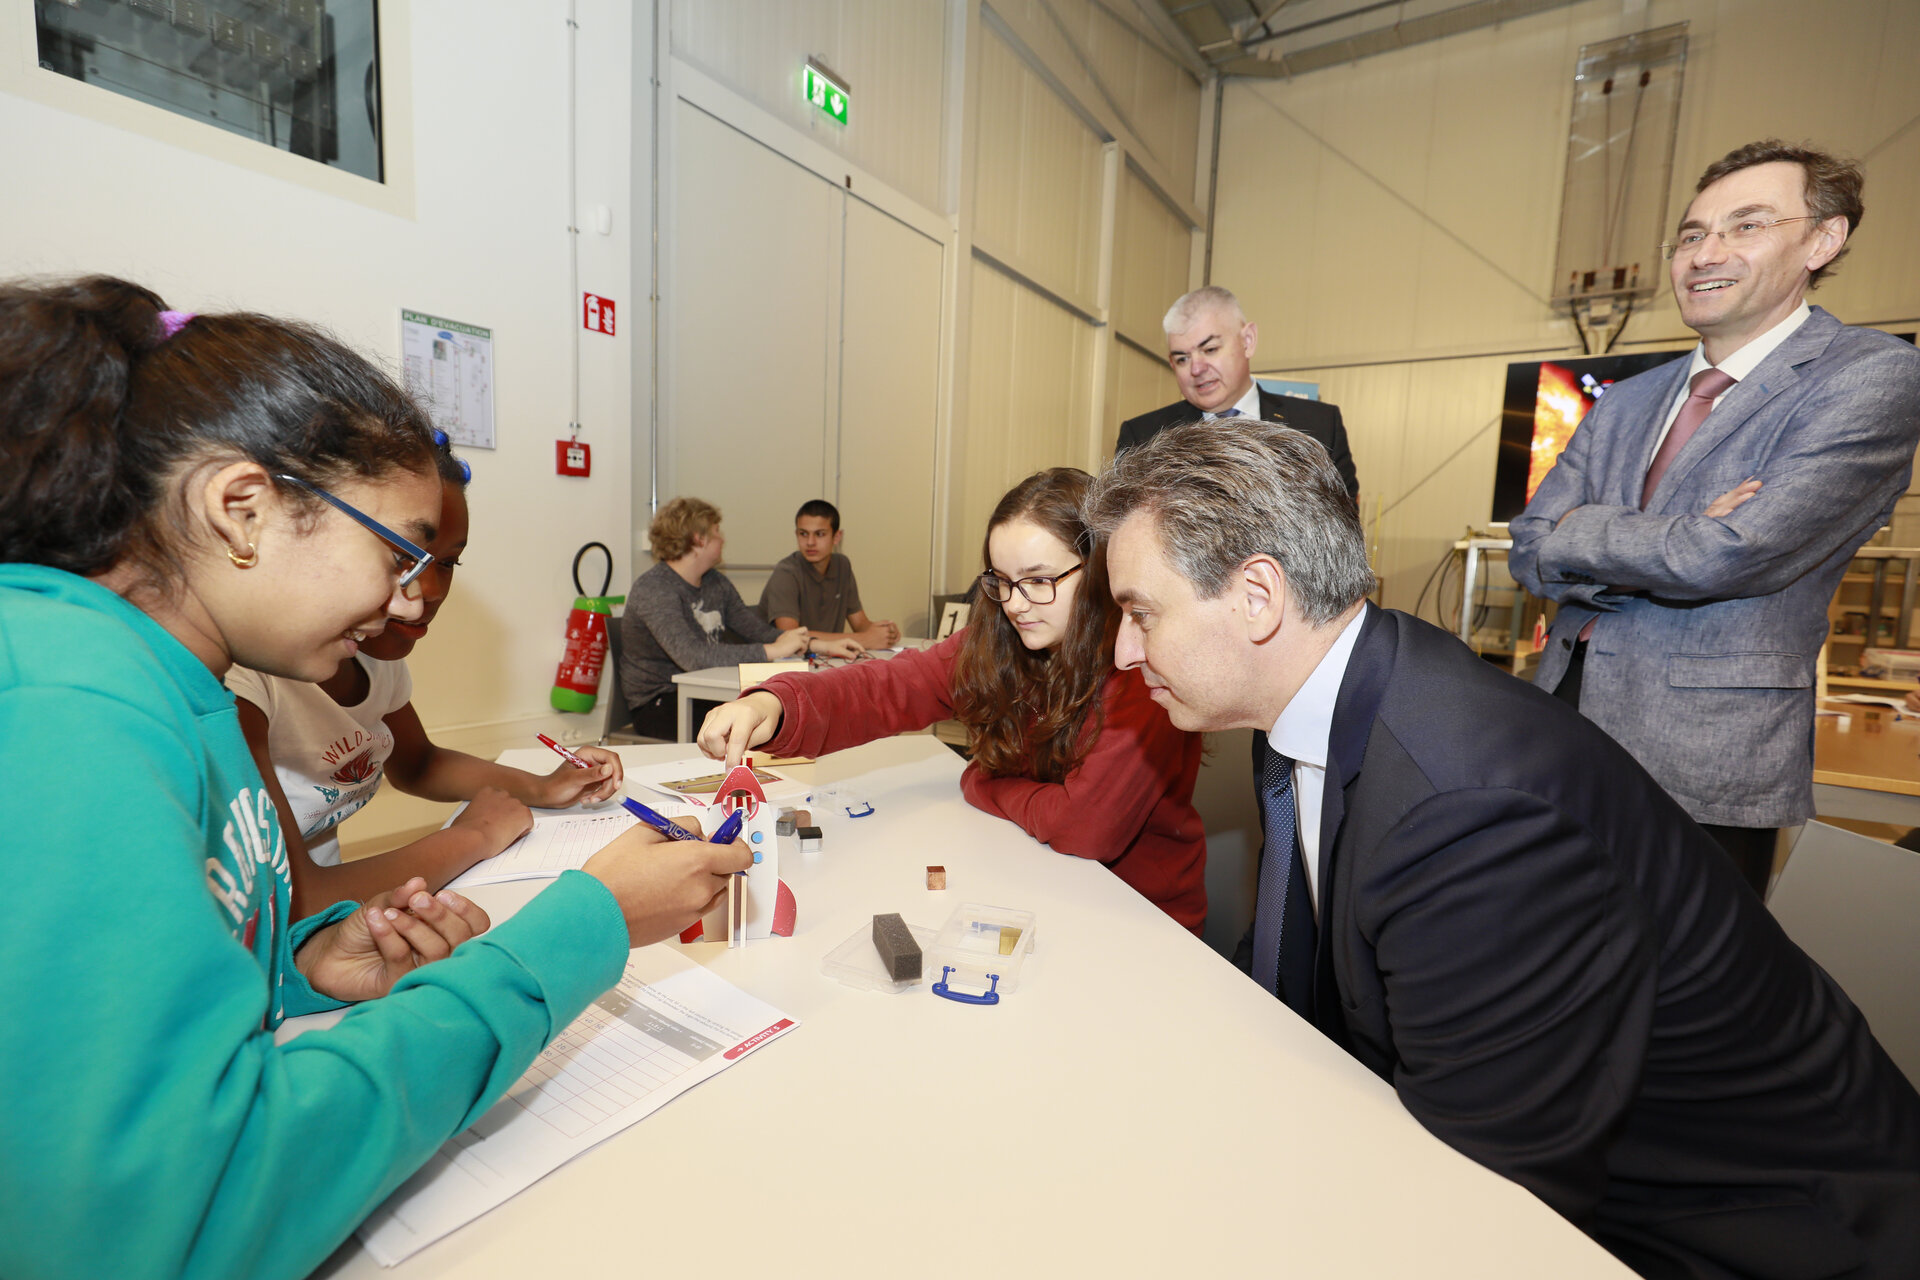 Pupils with the Luxembourg Minister of Education, Children and Youth